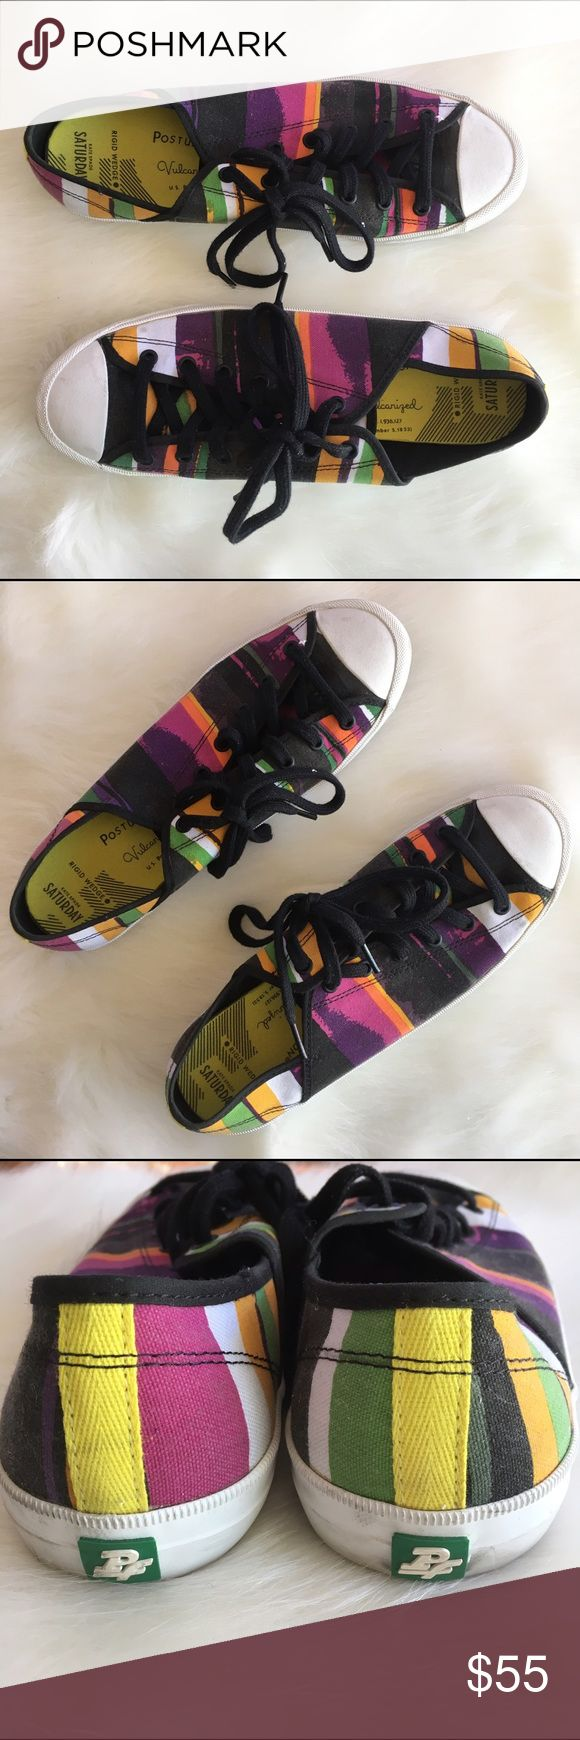 Kate Spade Saturday Colorful Sneakers Hardly worn Kate Spade Saturday Tennis shoes. Size 10. Still smells like new rubber kate spade Shoes Sneakers